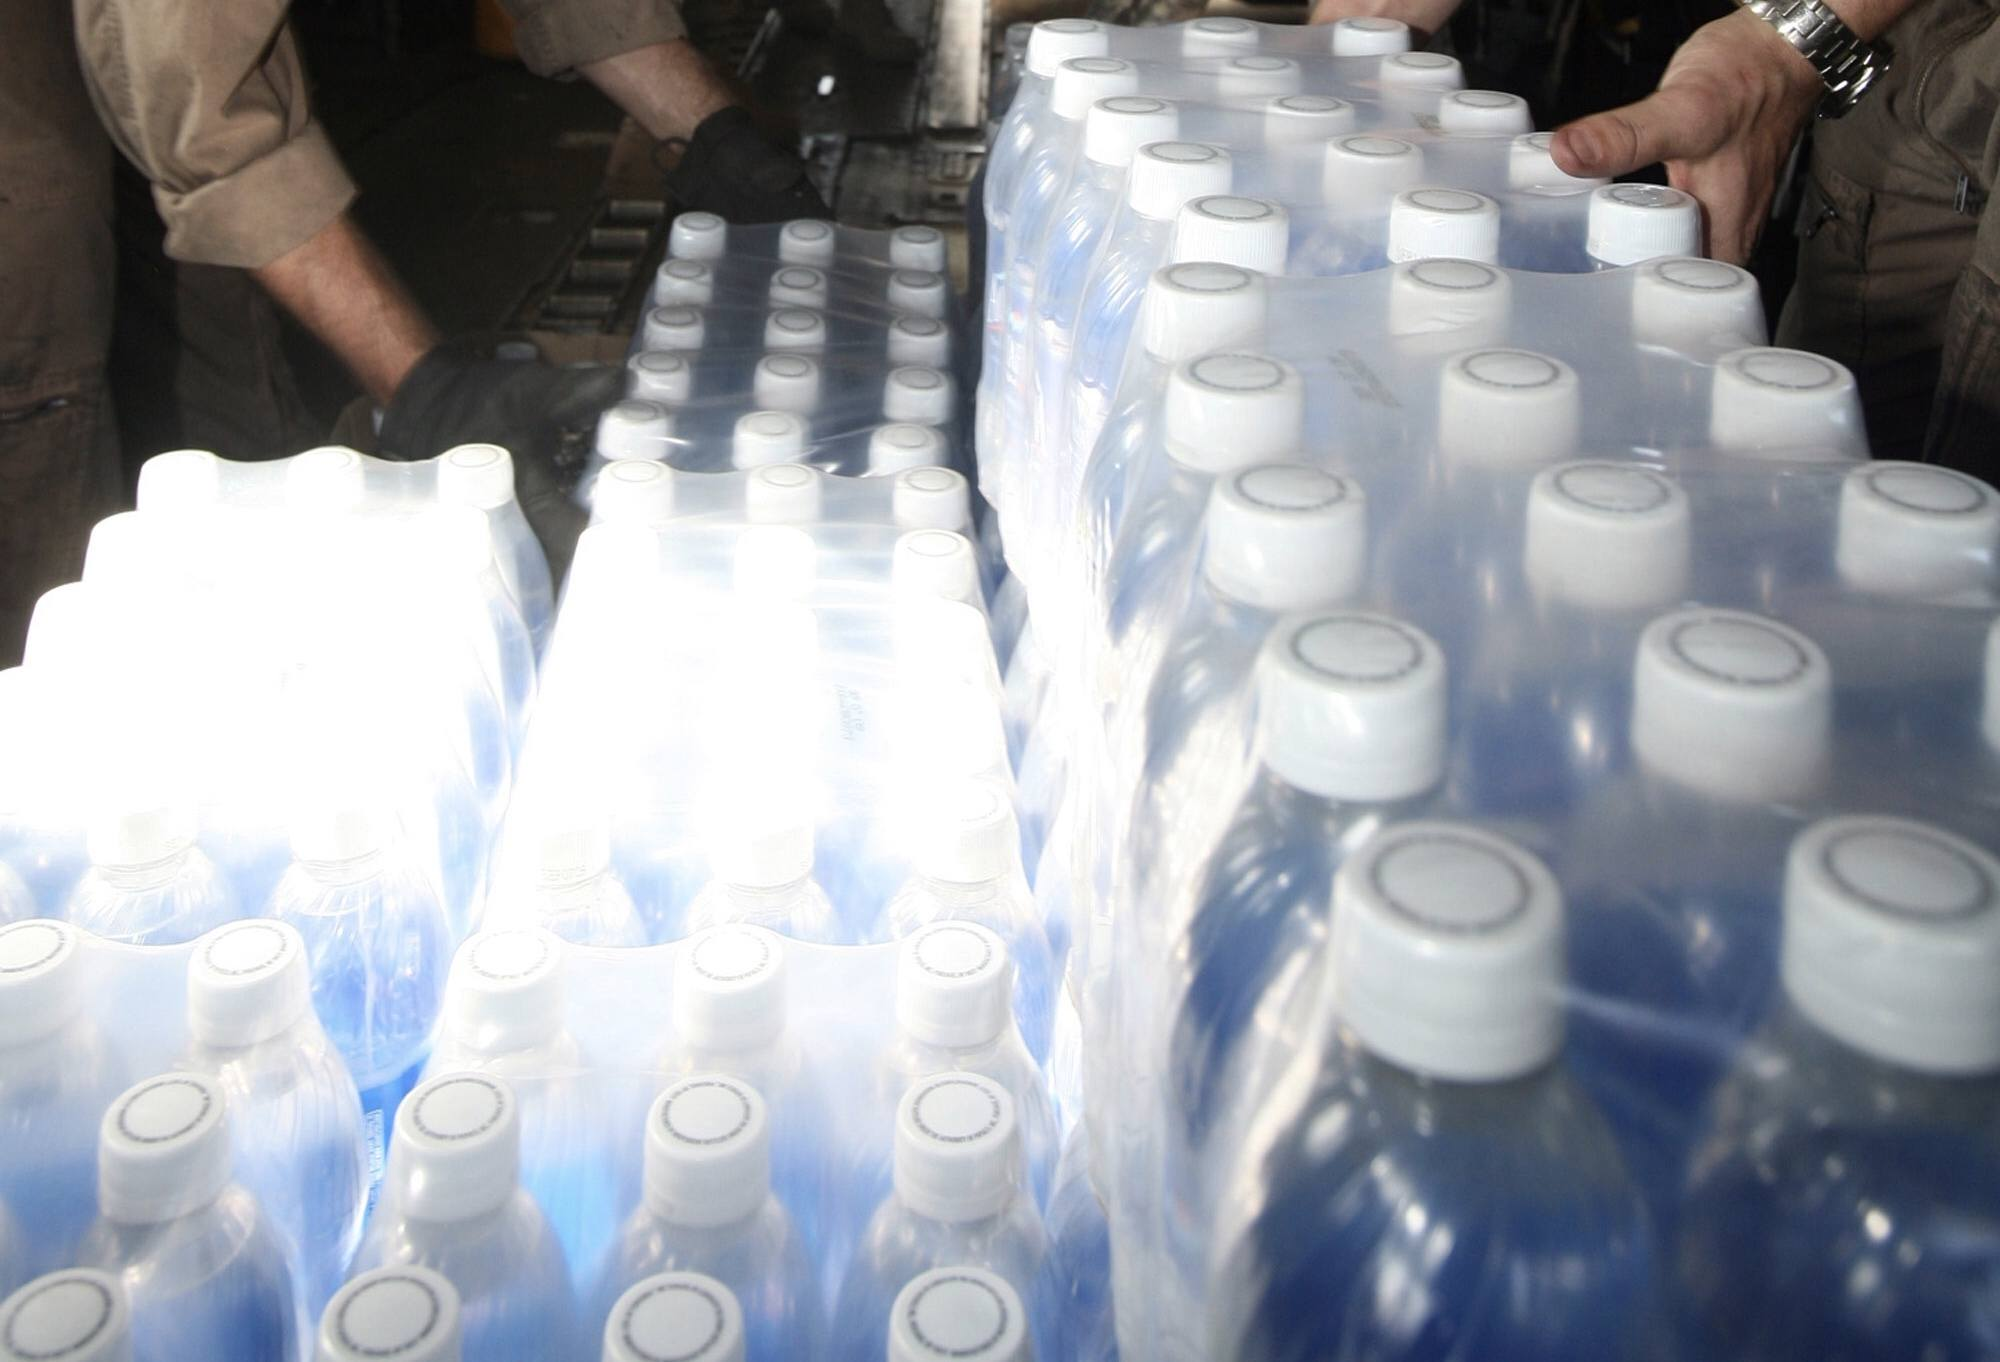 Brooklyn resident outraged over water bottles